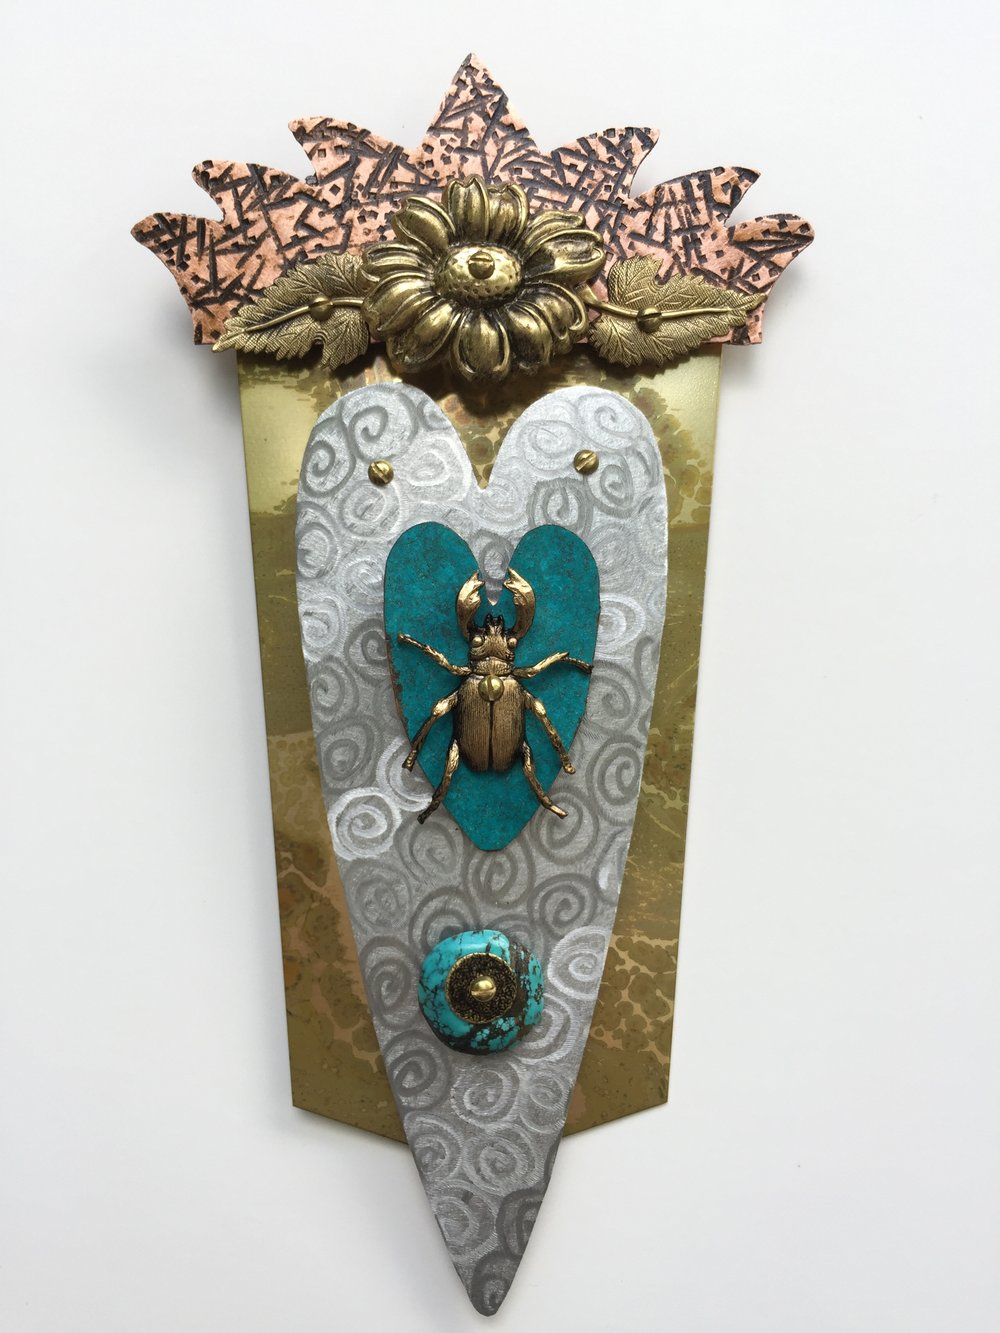 Metal Light Switch Covers Handmade by WildWorks Ltd